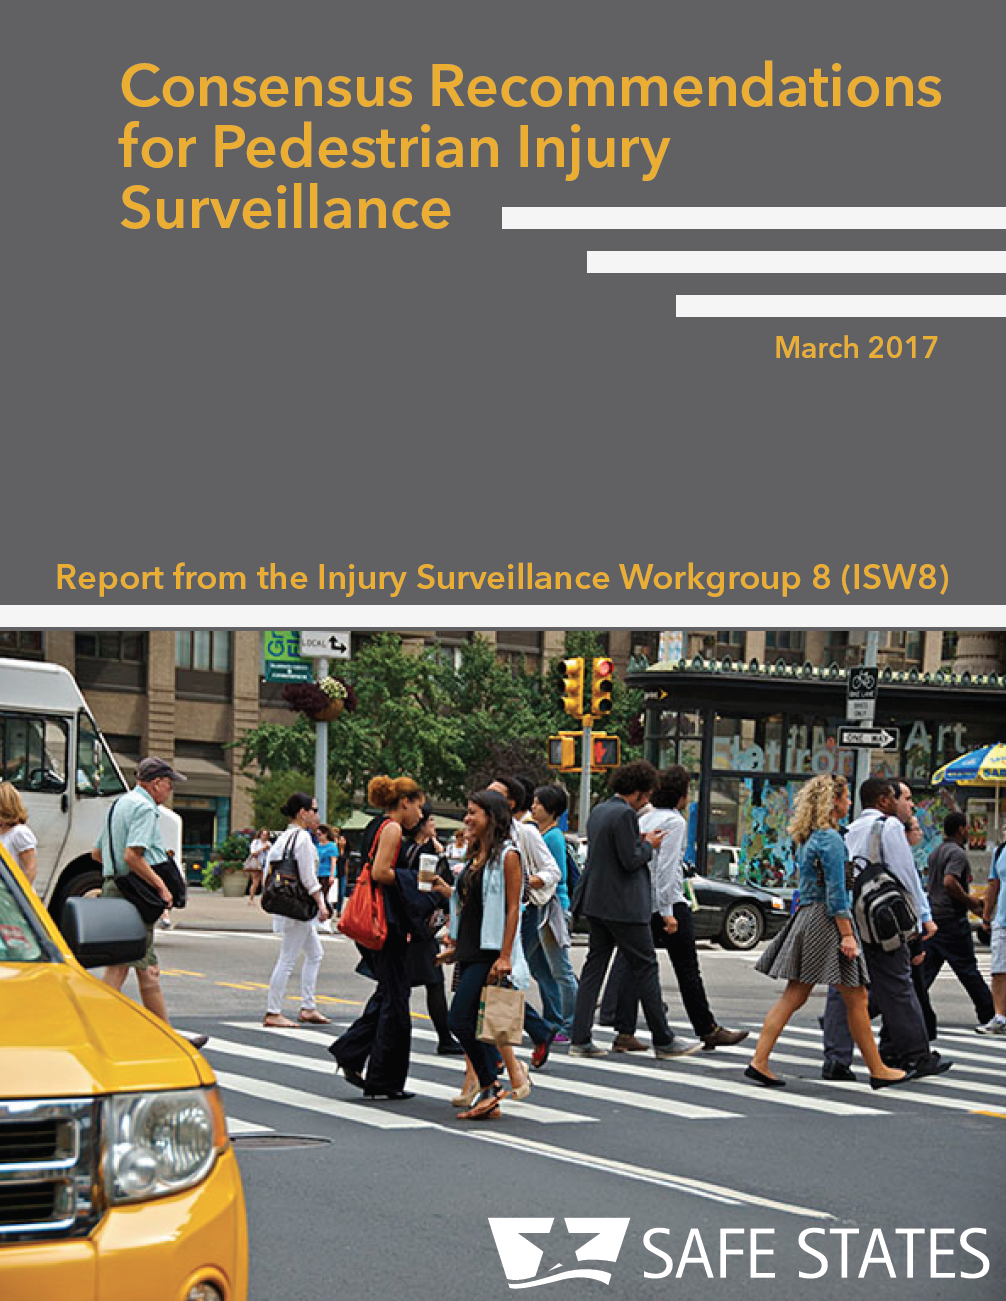 Consensus Recommendations for Pedestrian Injury Surveillance